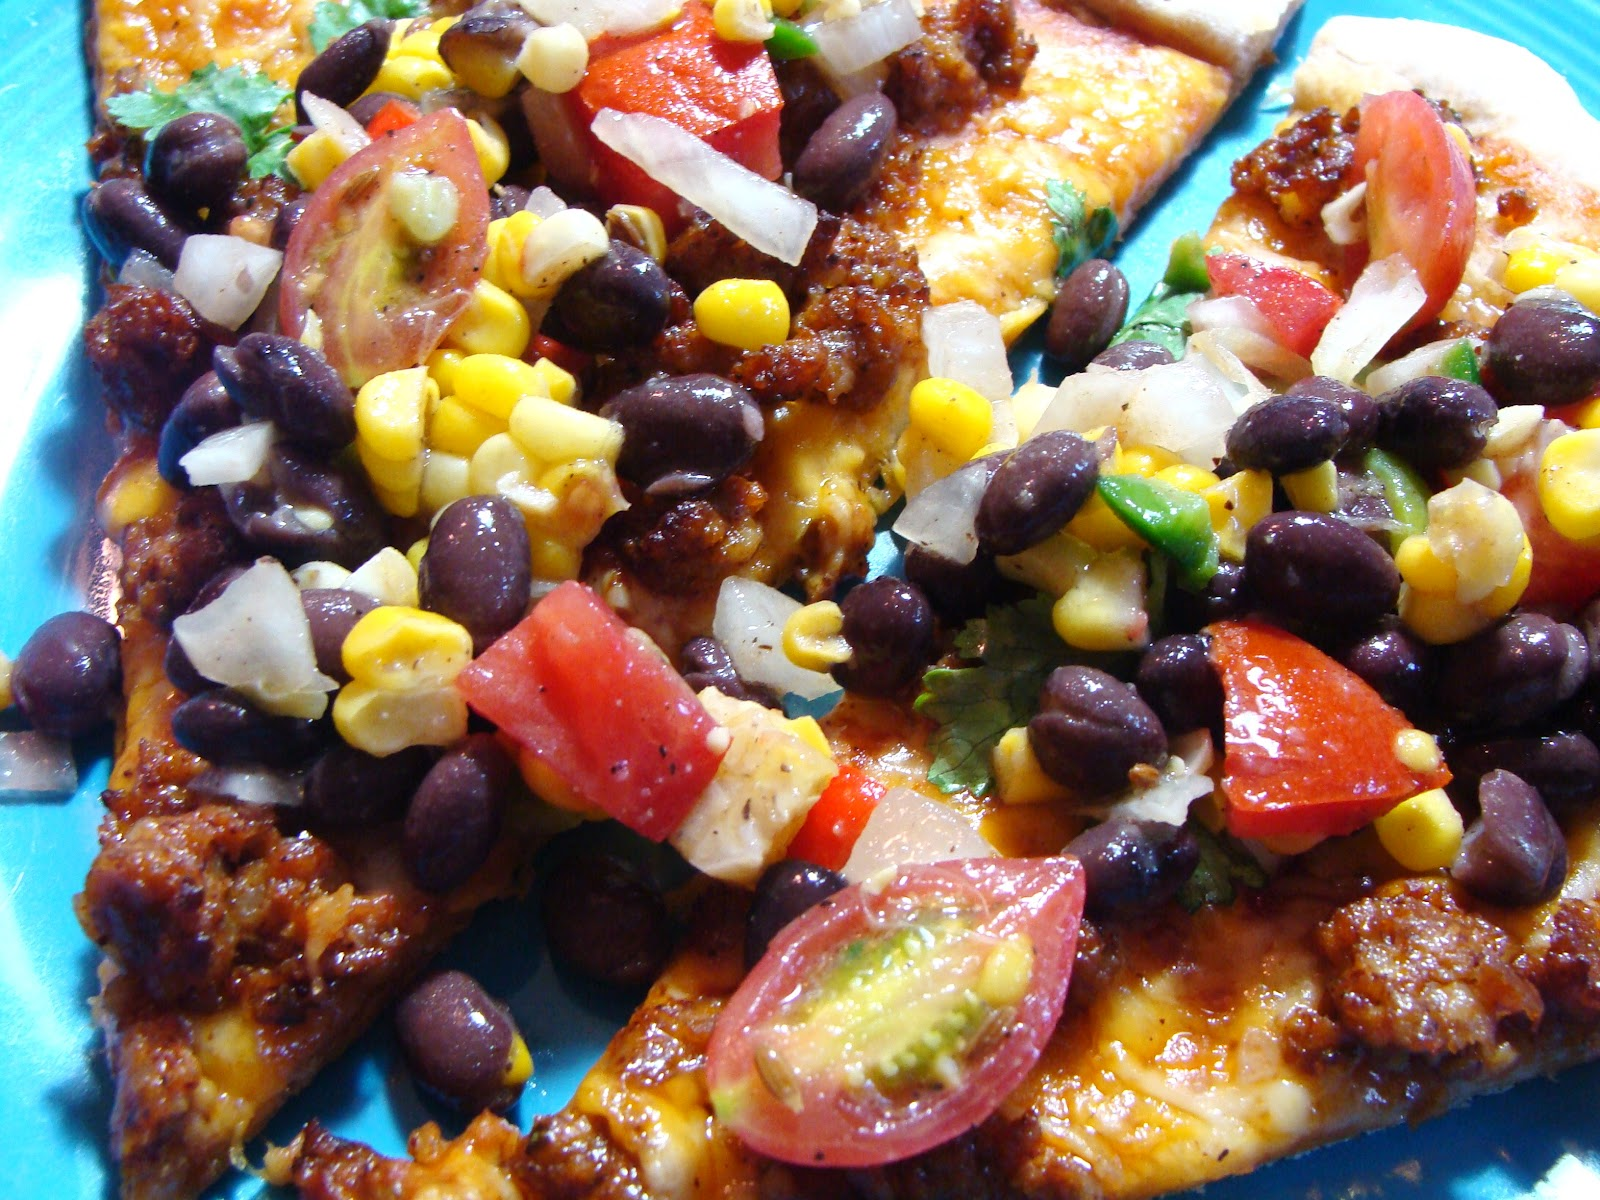 ... Paws Create: Southwestern Pizza with Black Bean and Corn Relish